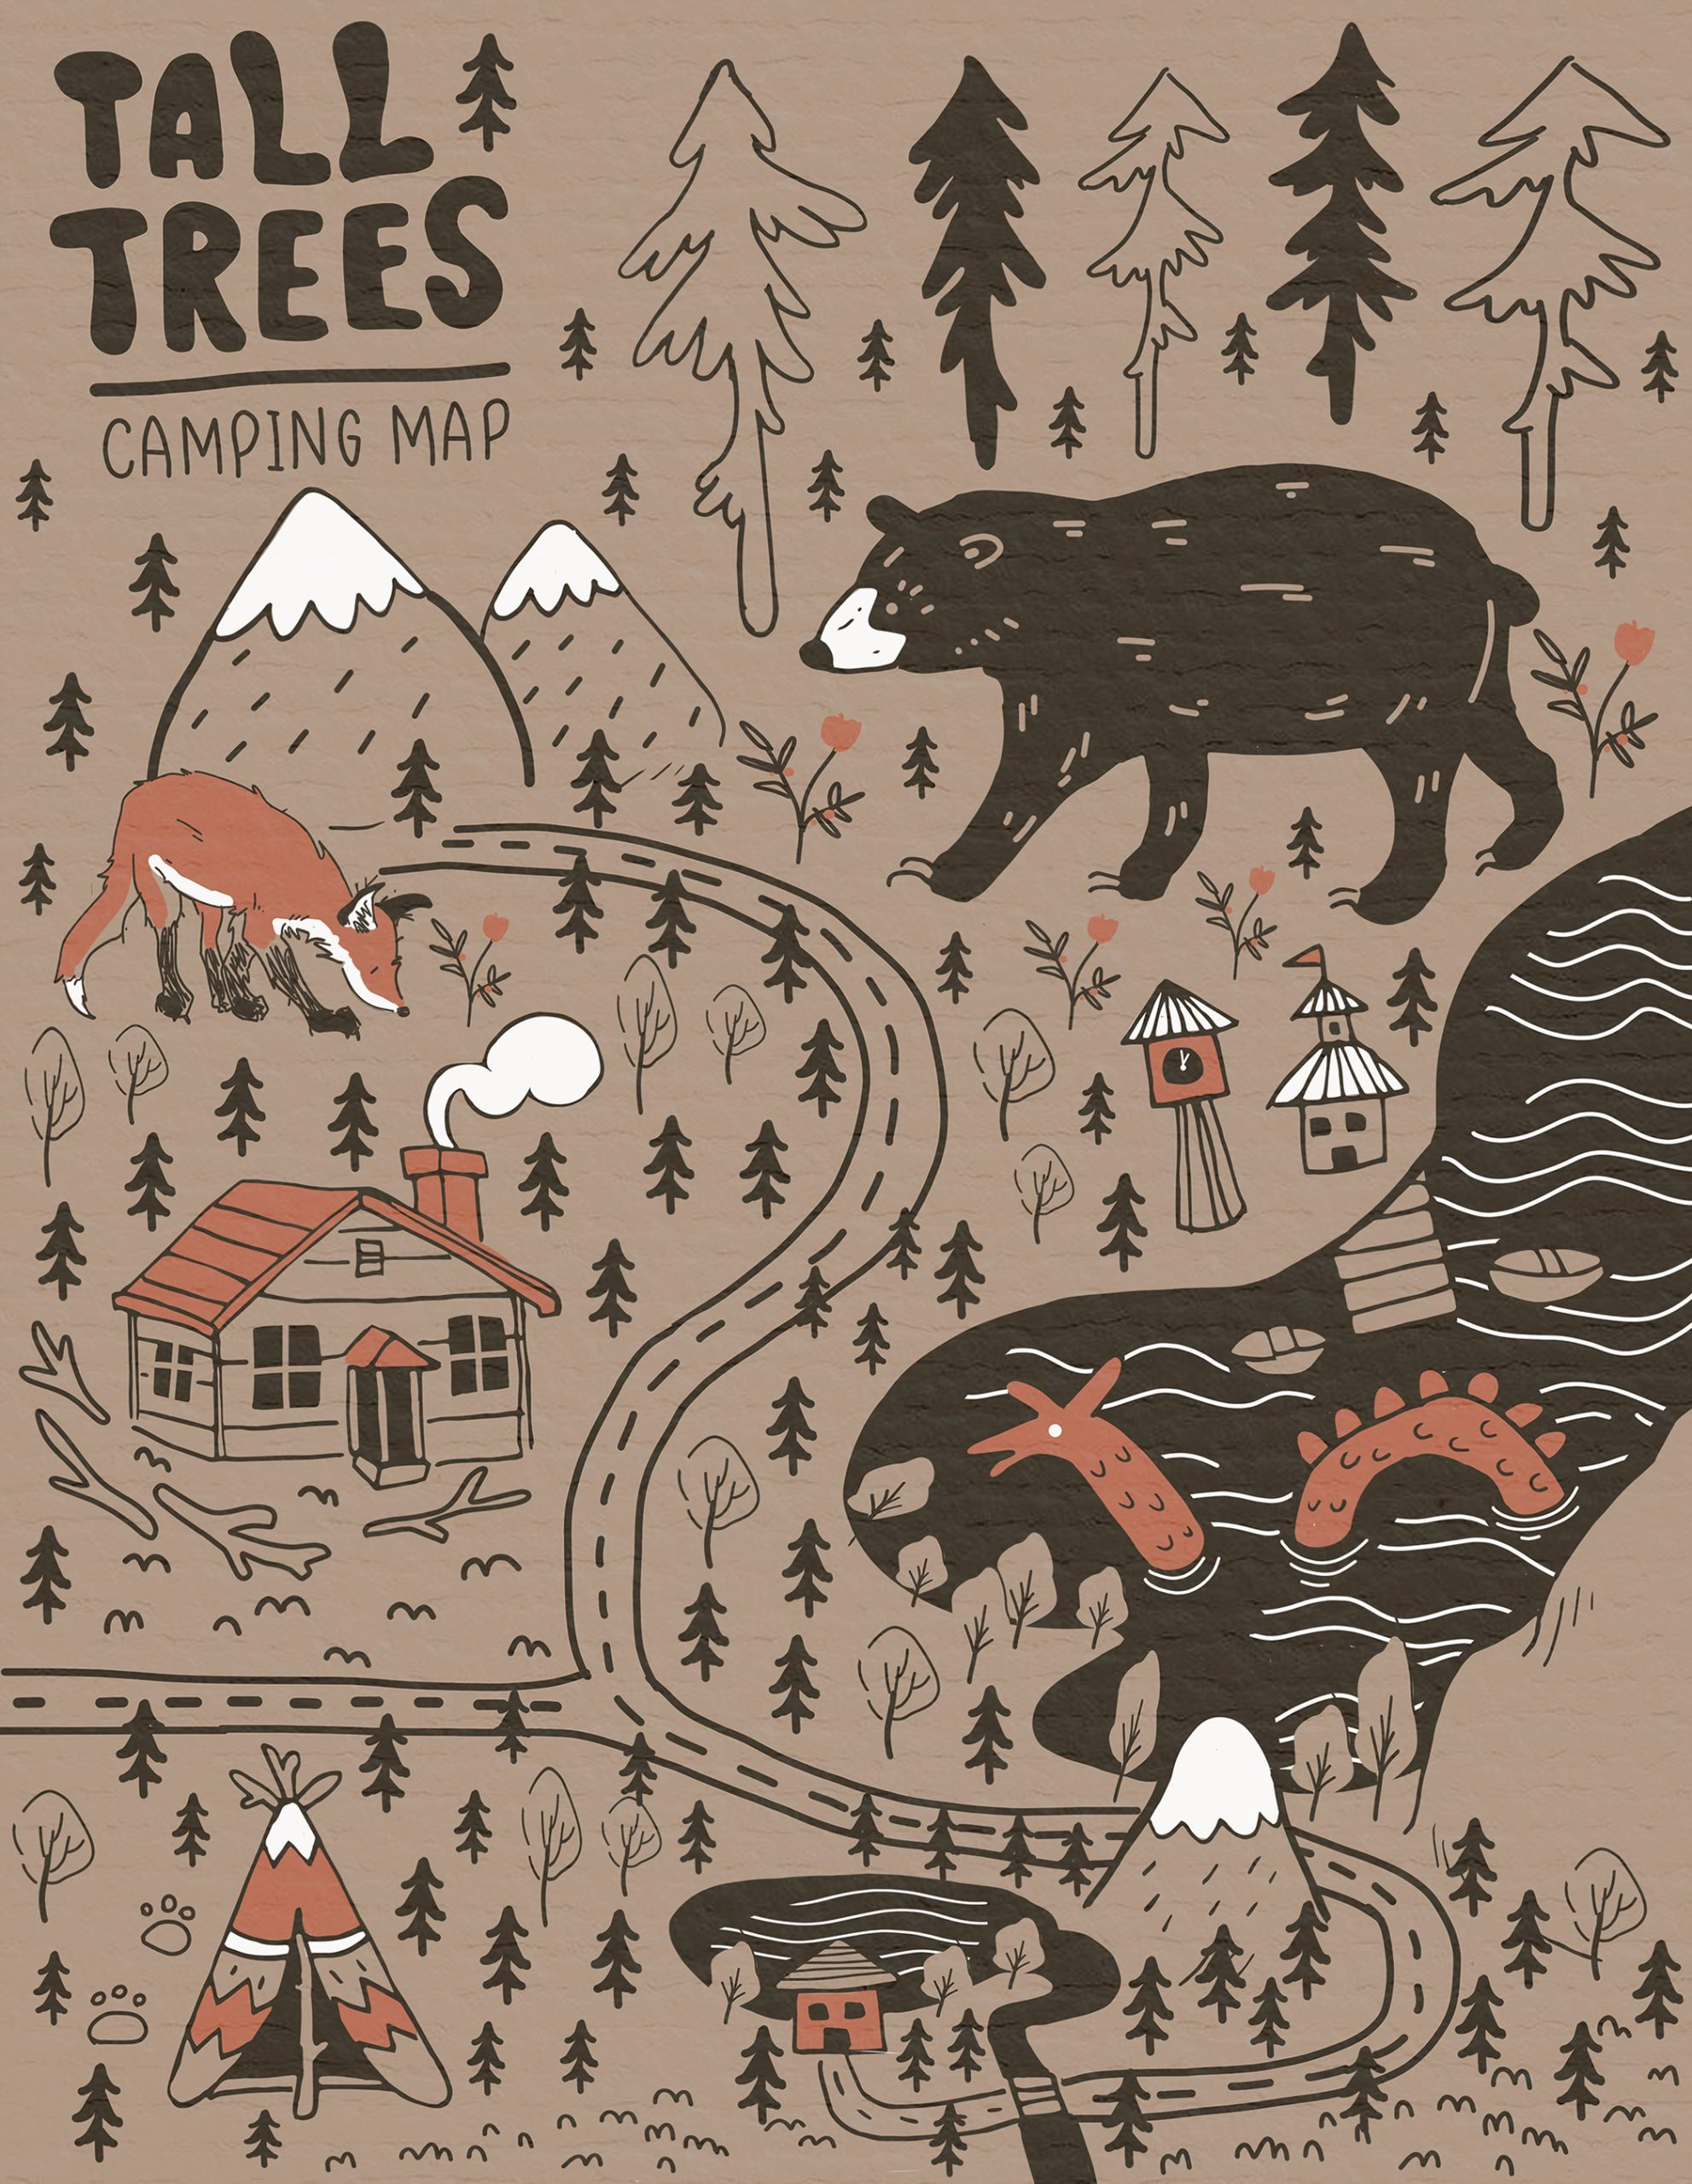 tall trees camping map with bears with brown monochromatic colors